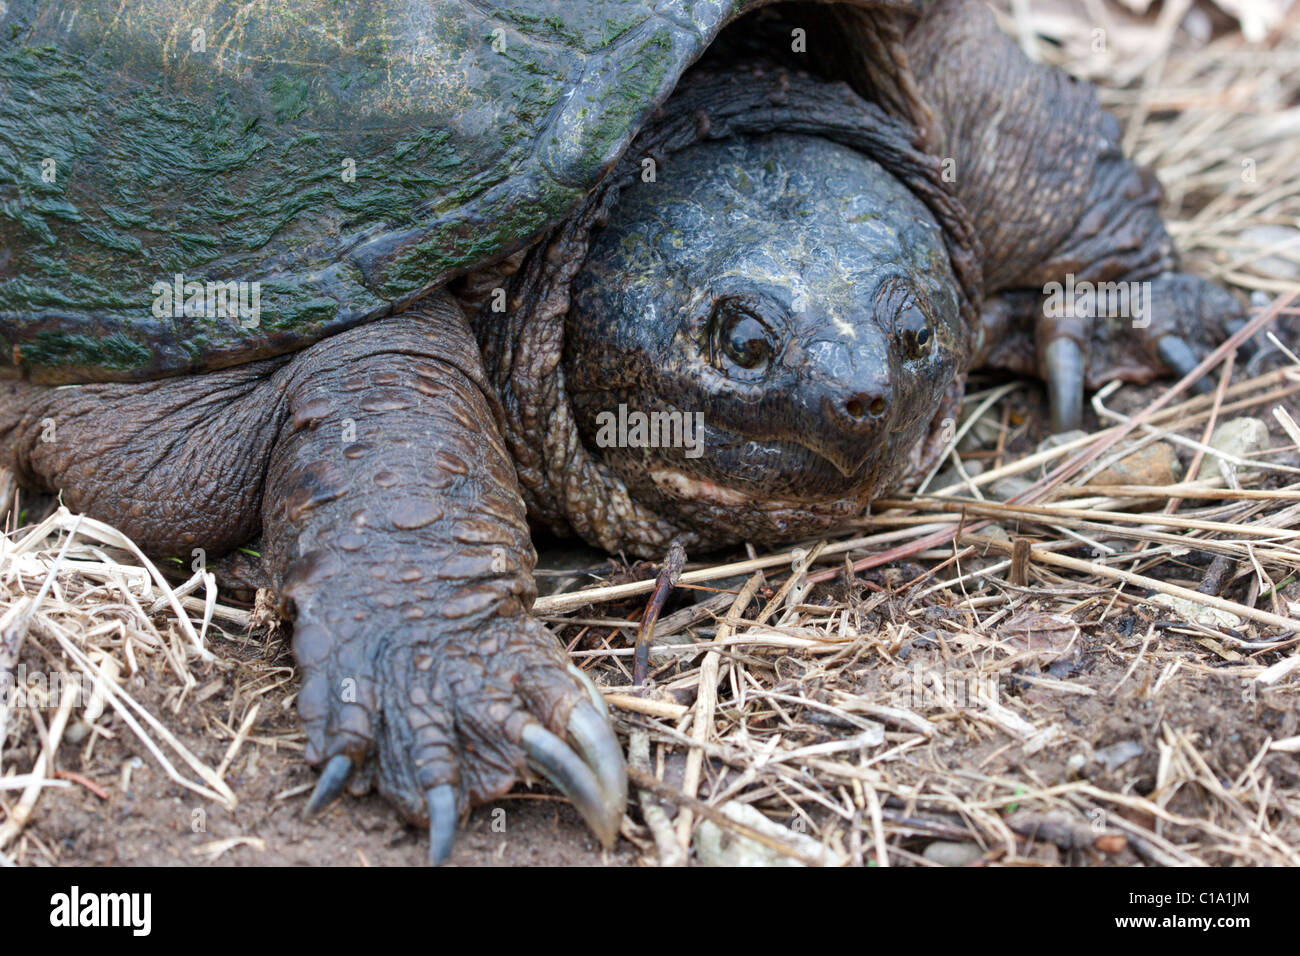 snapping turtle large reptile Stock Photo